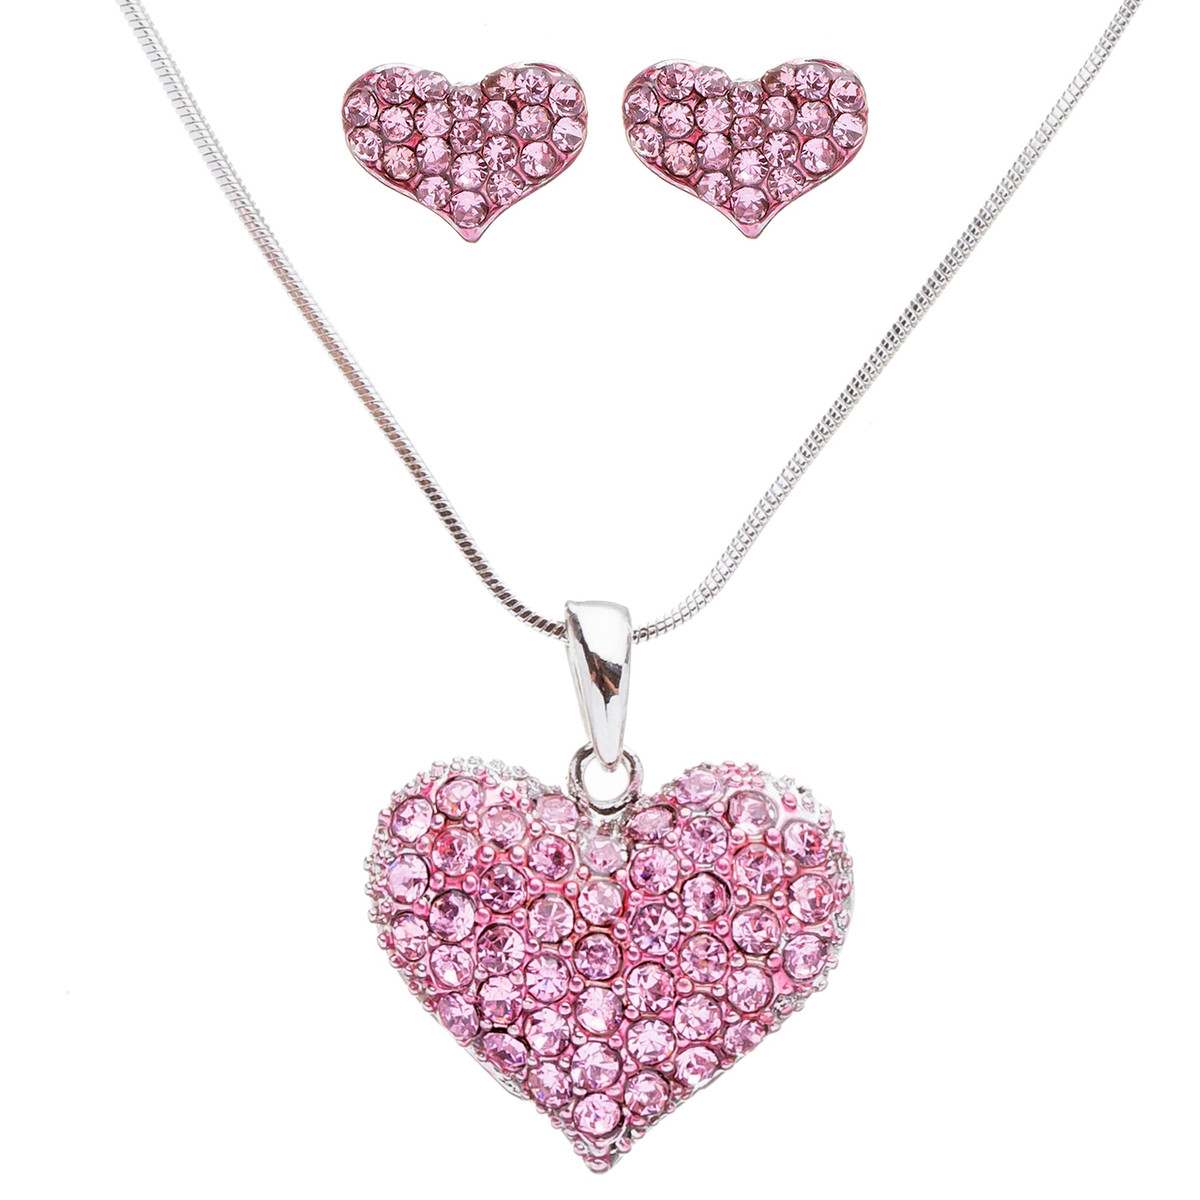 heart proposal said her gift for pendant yes necklace he i saidyeswhite valentines couples day asked products engagement